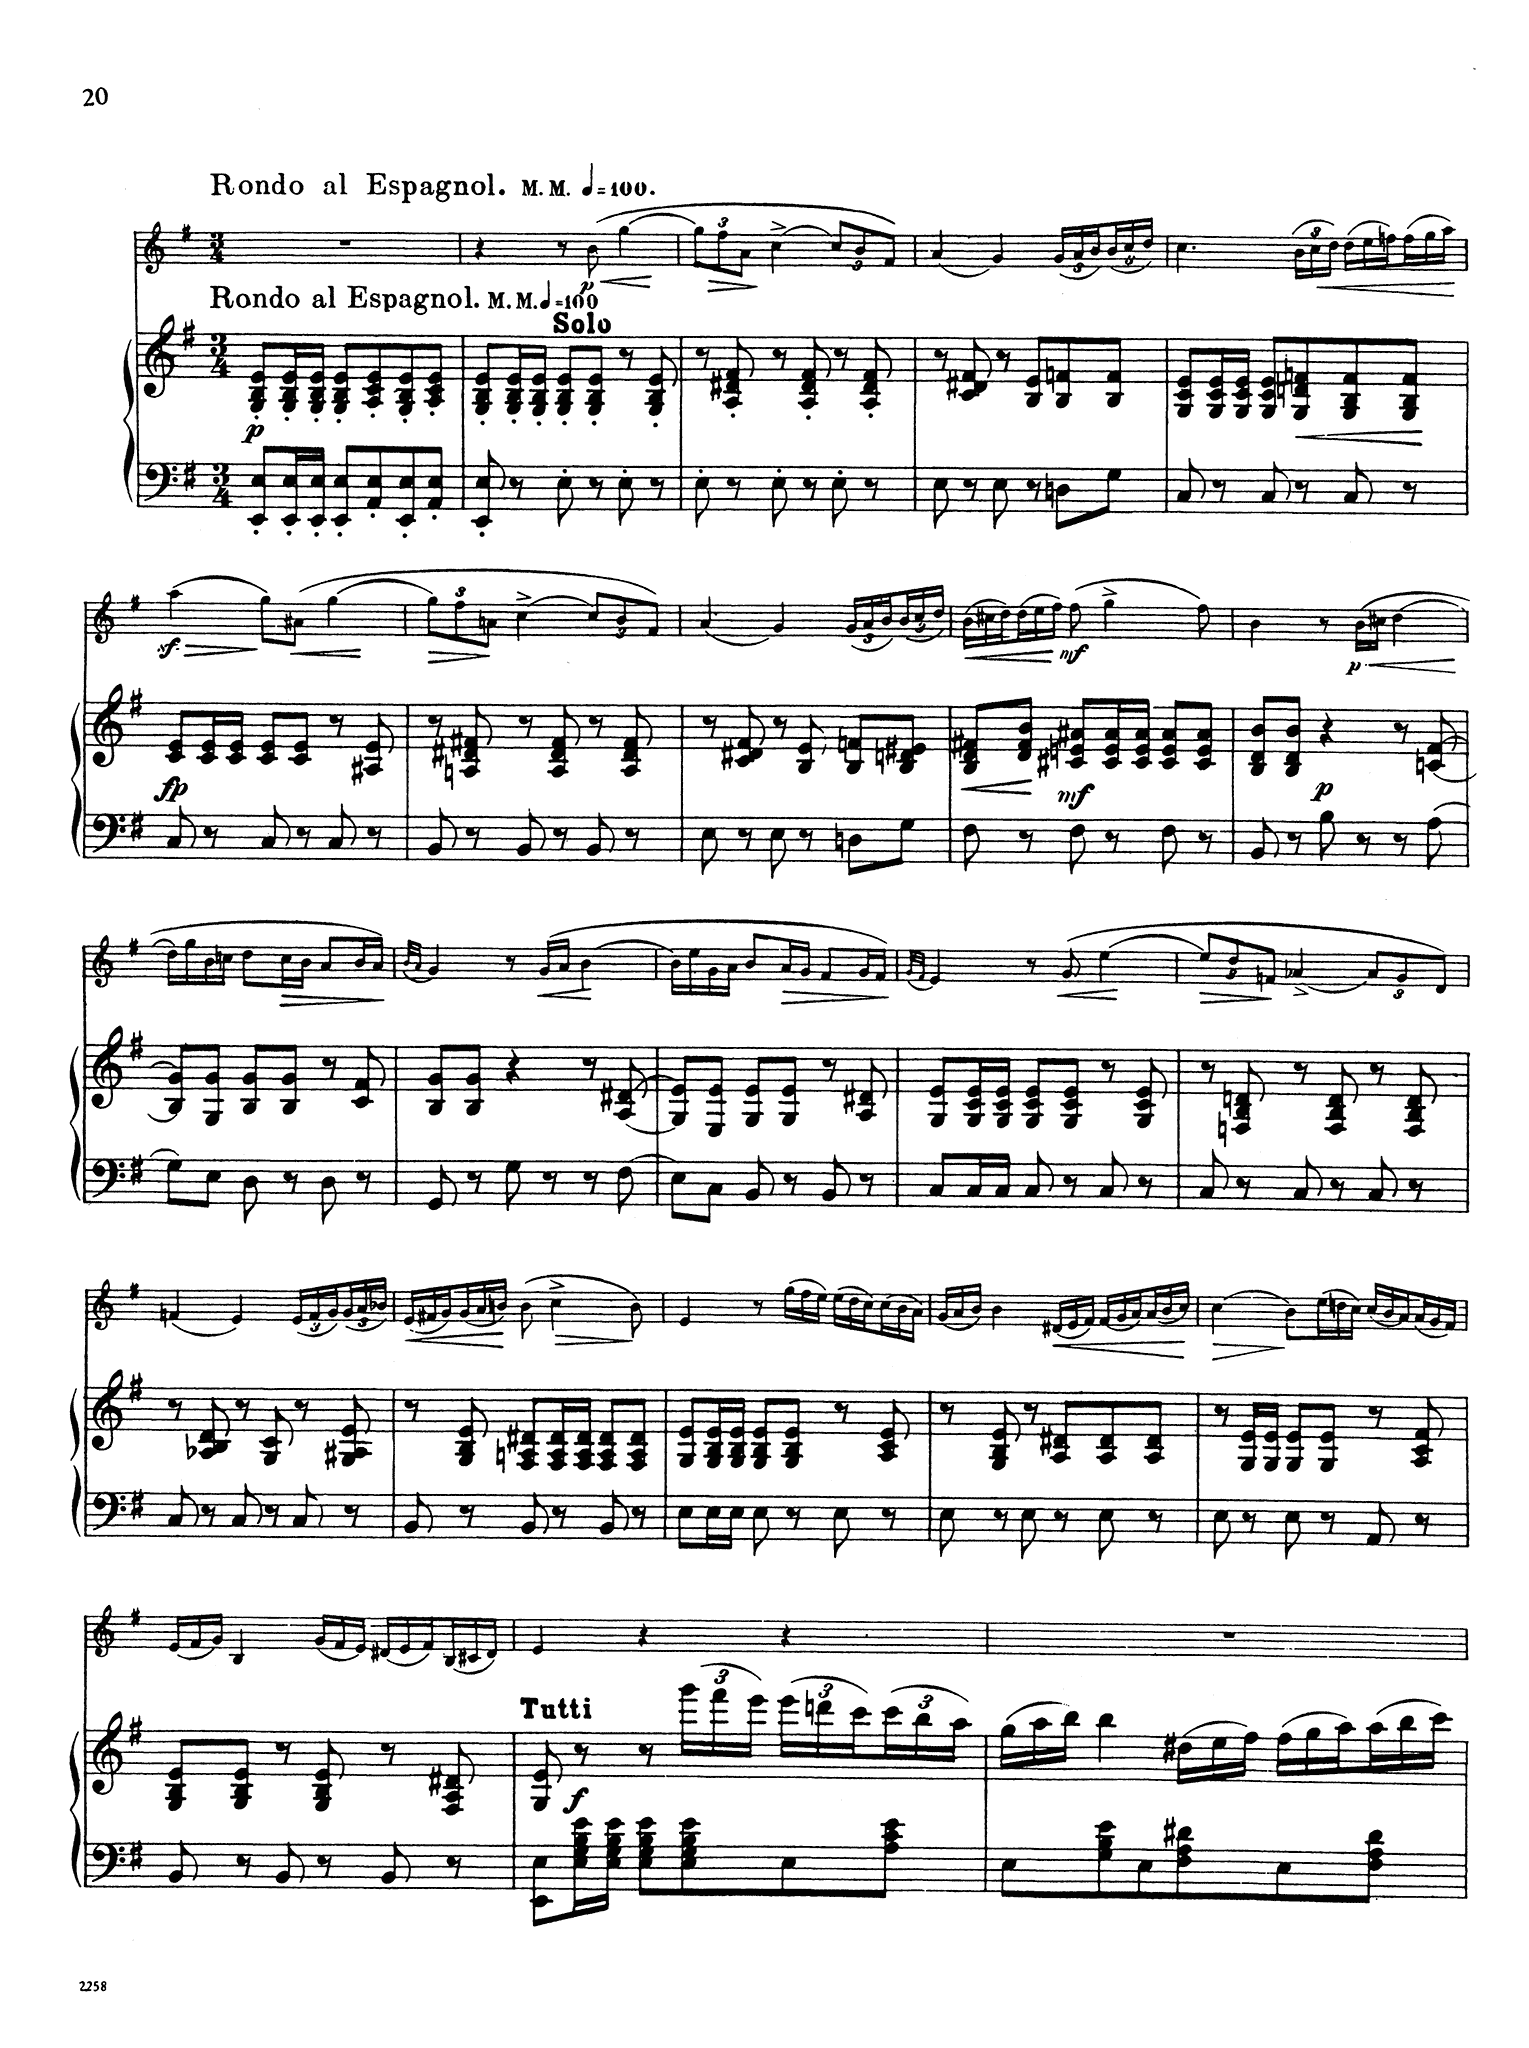 Clarinet Concerto No. 4 in E Minor, WoO 20 - Movement 3